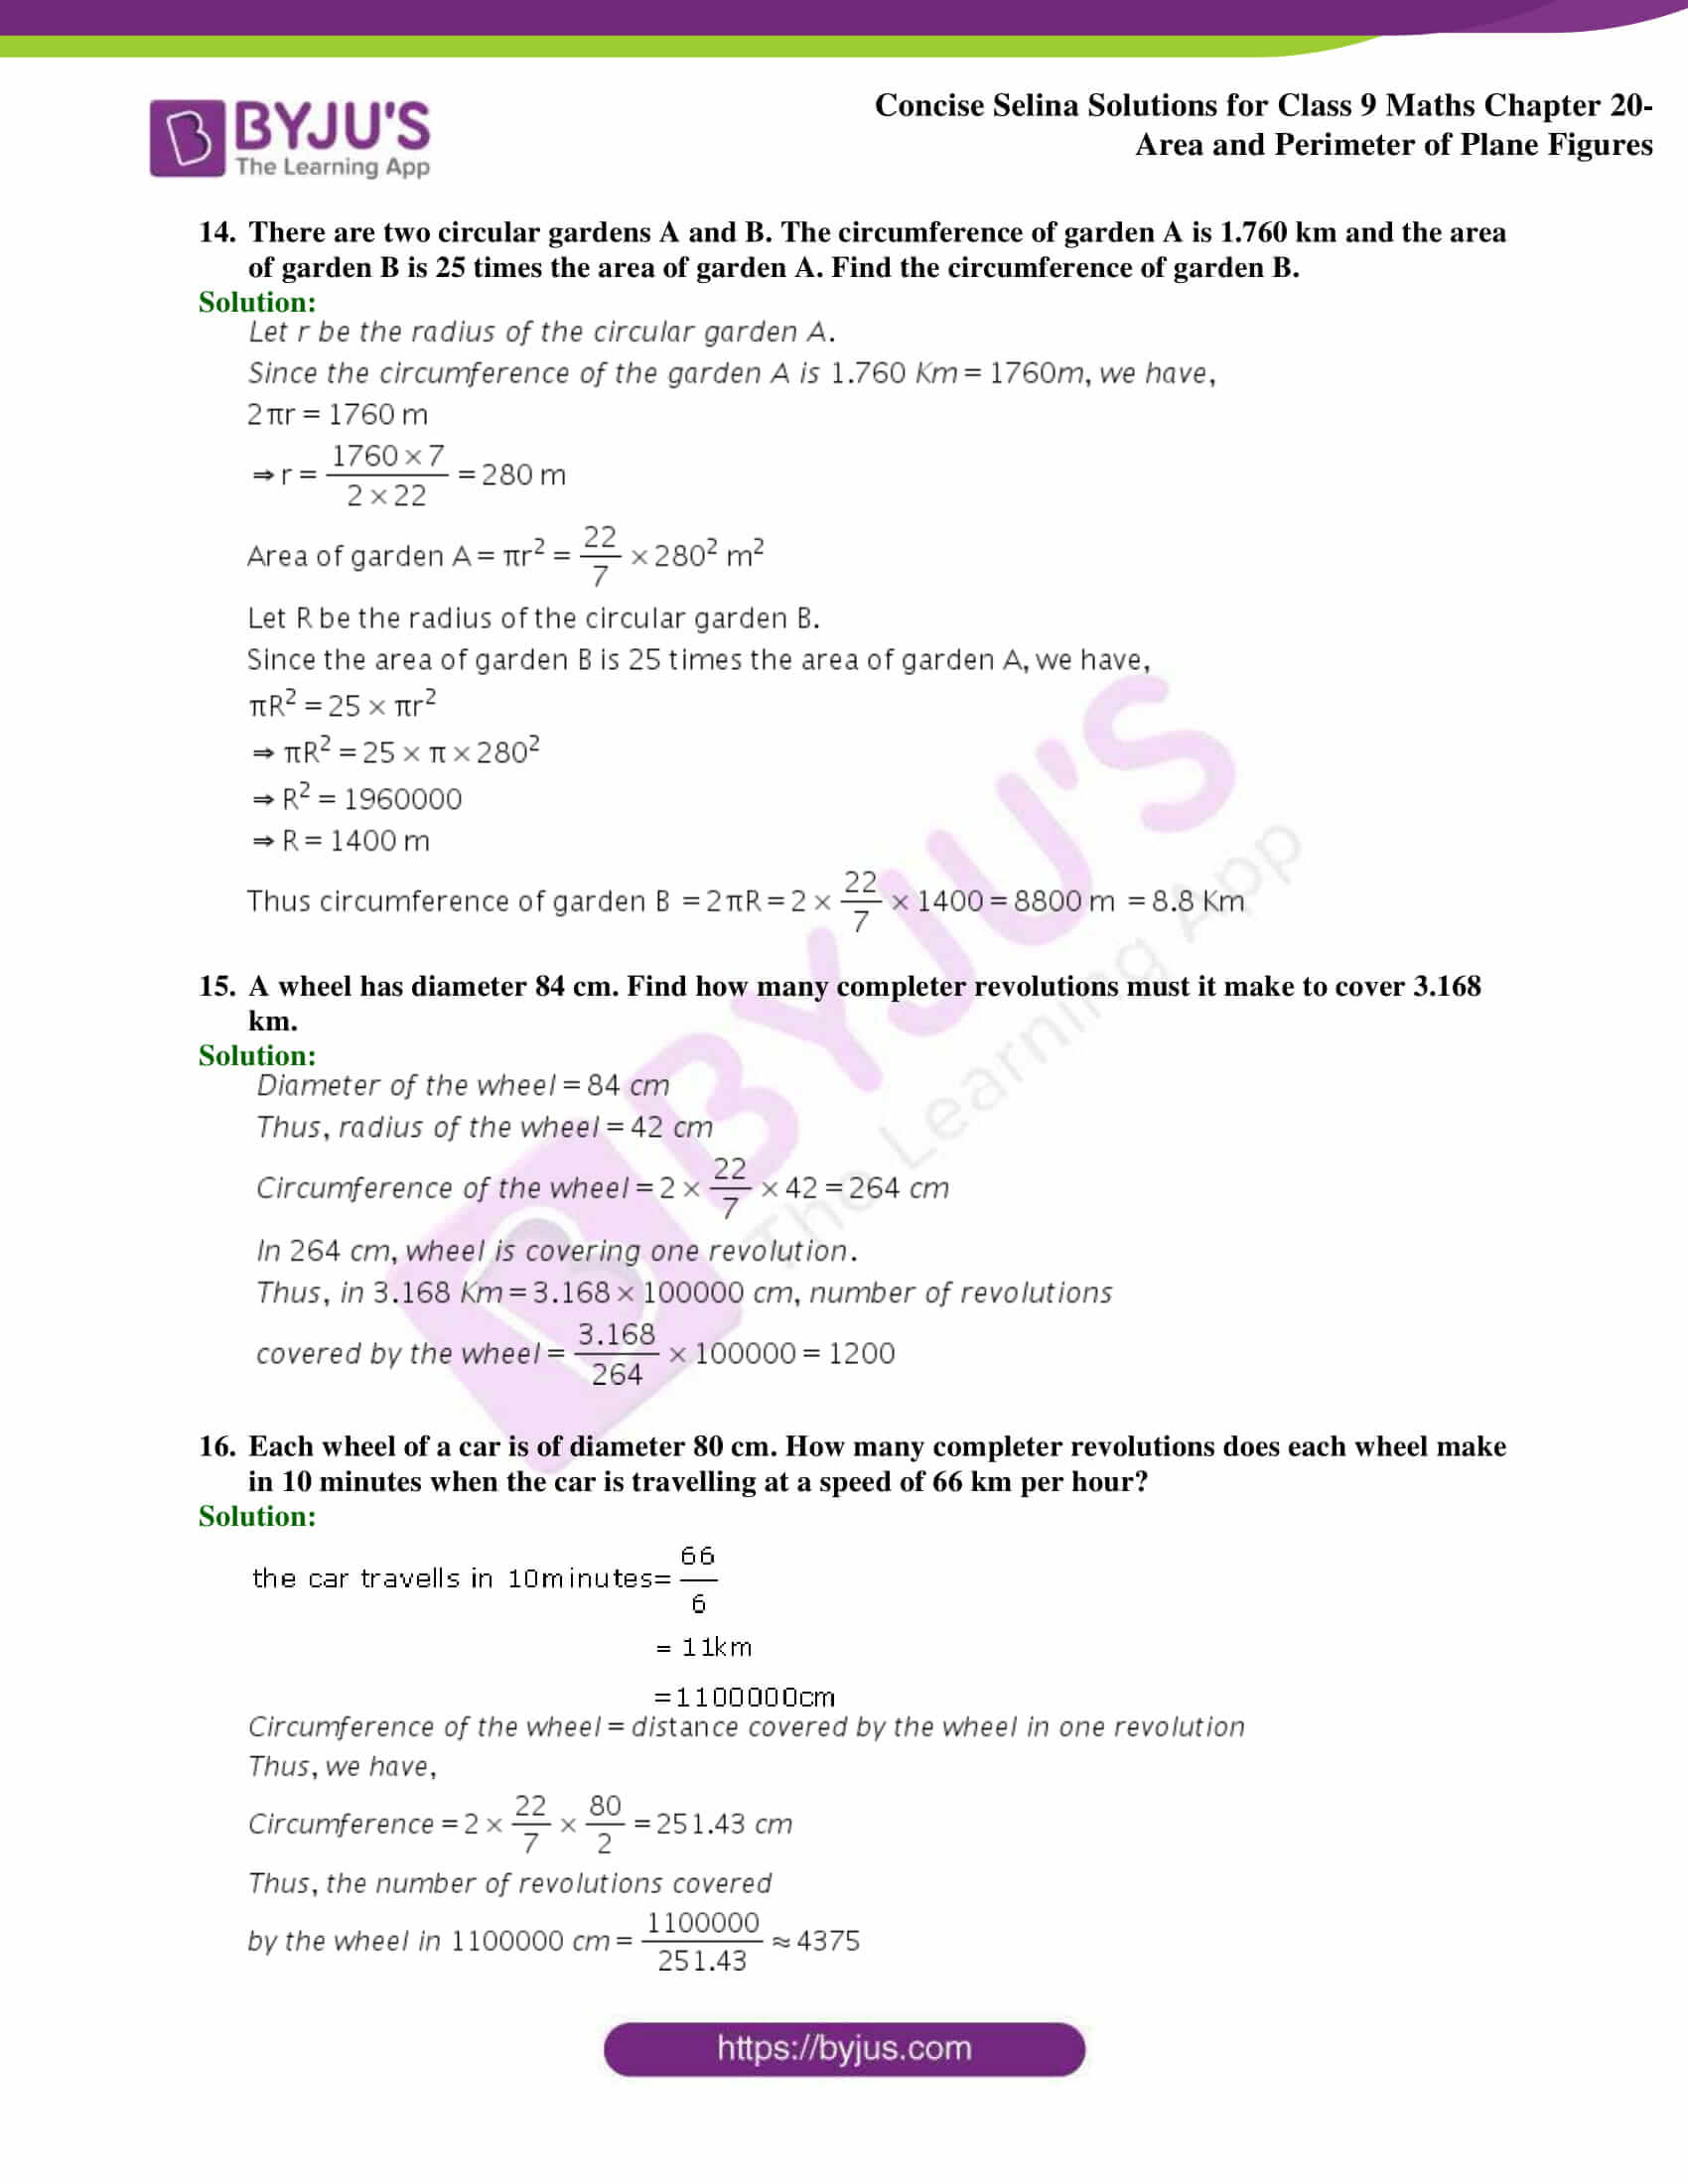 Concise Selina Solutions Class 9 Maths Chapter 20 Area and Perimeter of Plane part 39